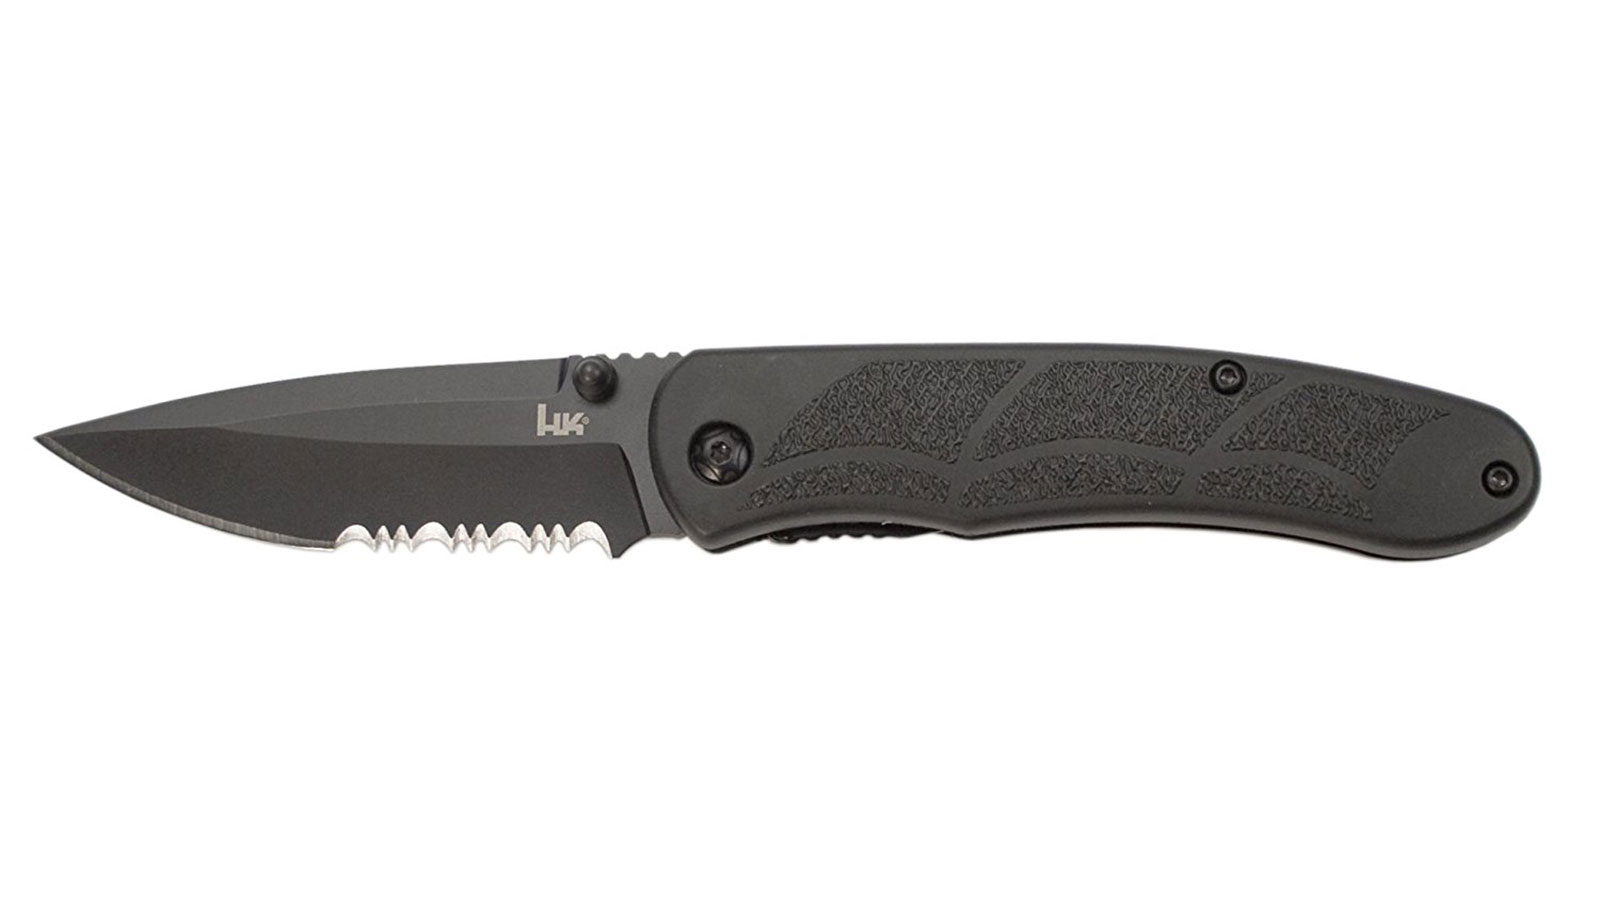 HK P 30 Assisted Open Tactical Folding Knife